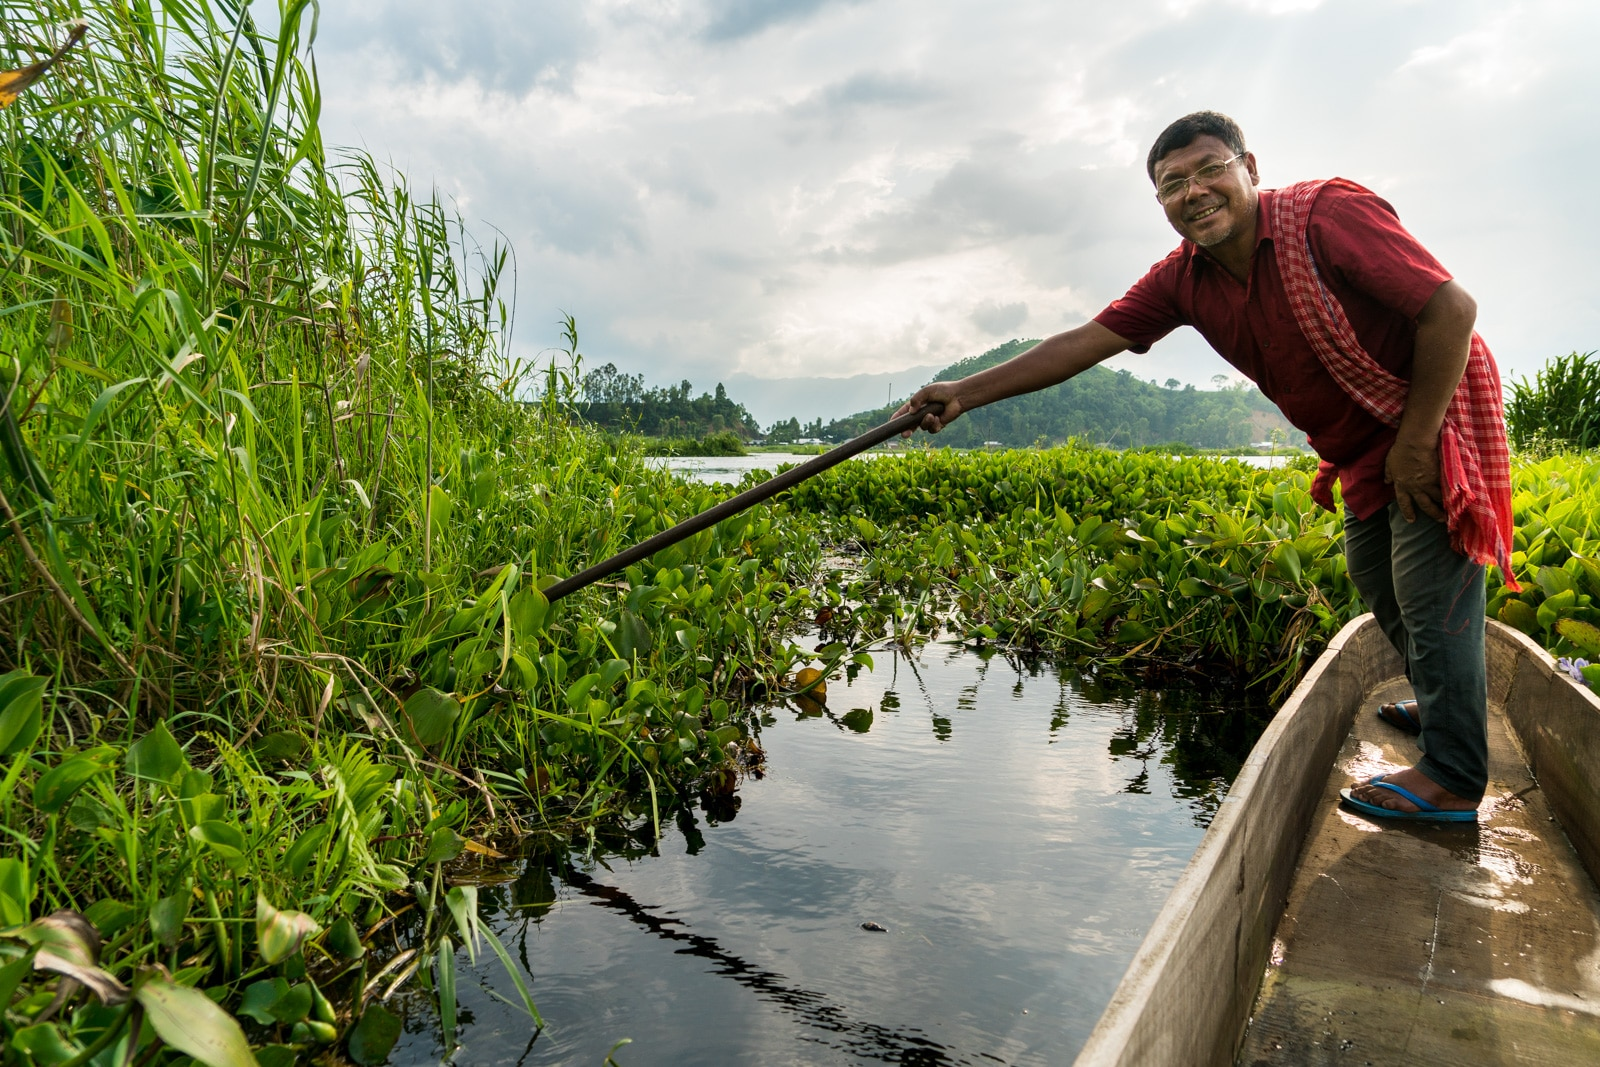 Why you need to visit Loktak Lake, Manipur, Northeast India - Clearing a path through the phumdi on a boat ride in the lake - Lost With Purpose